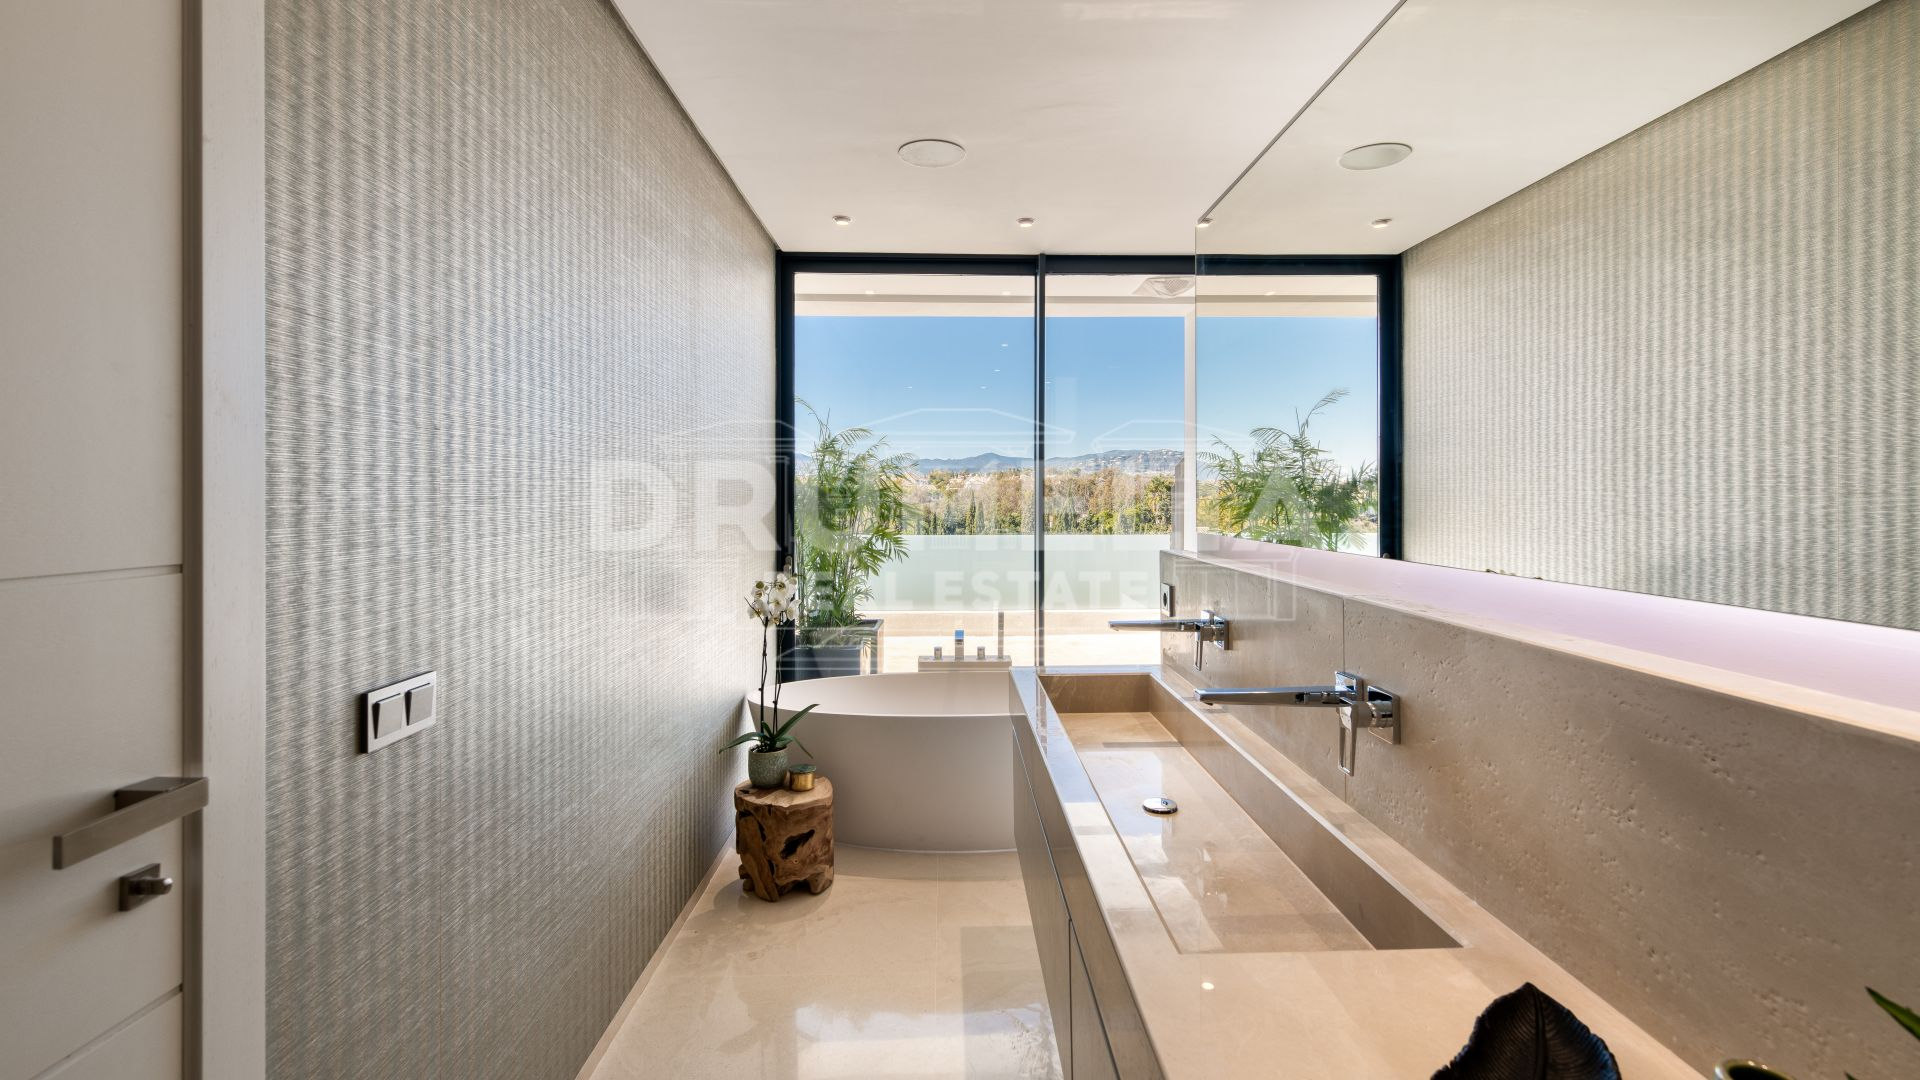 Marbella Golden Mile, New Elegant Modern Luxury Villa, Altos de Puente Romano, Marbella Golden Mile